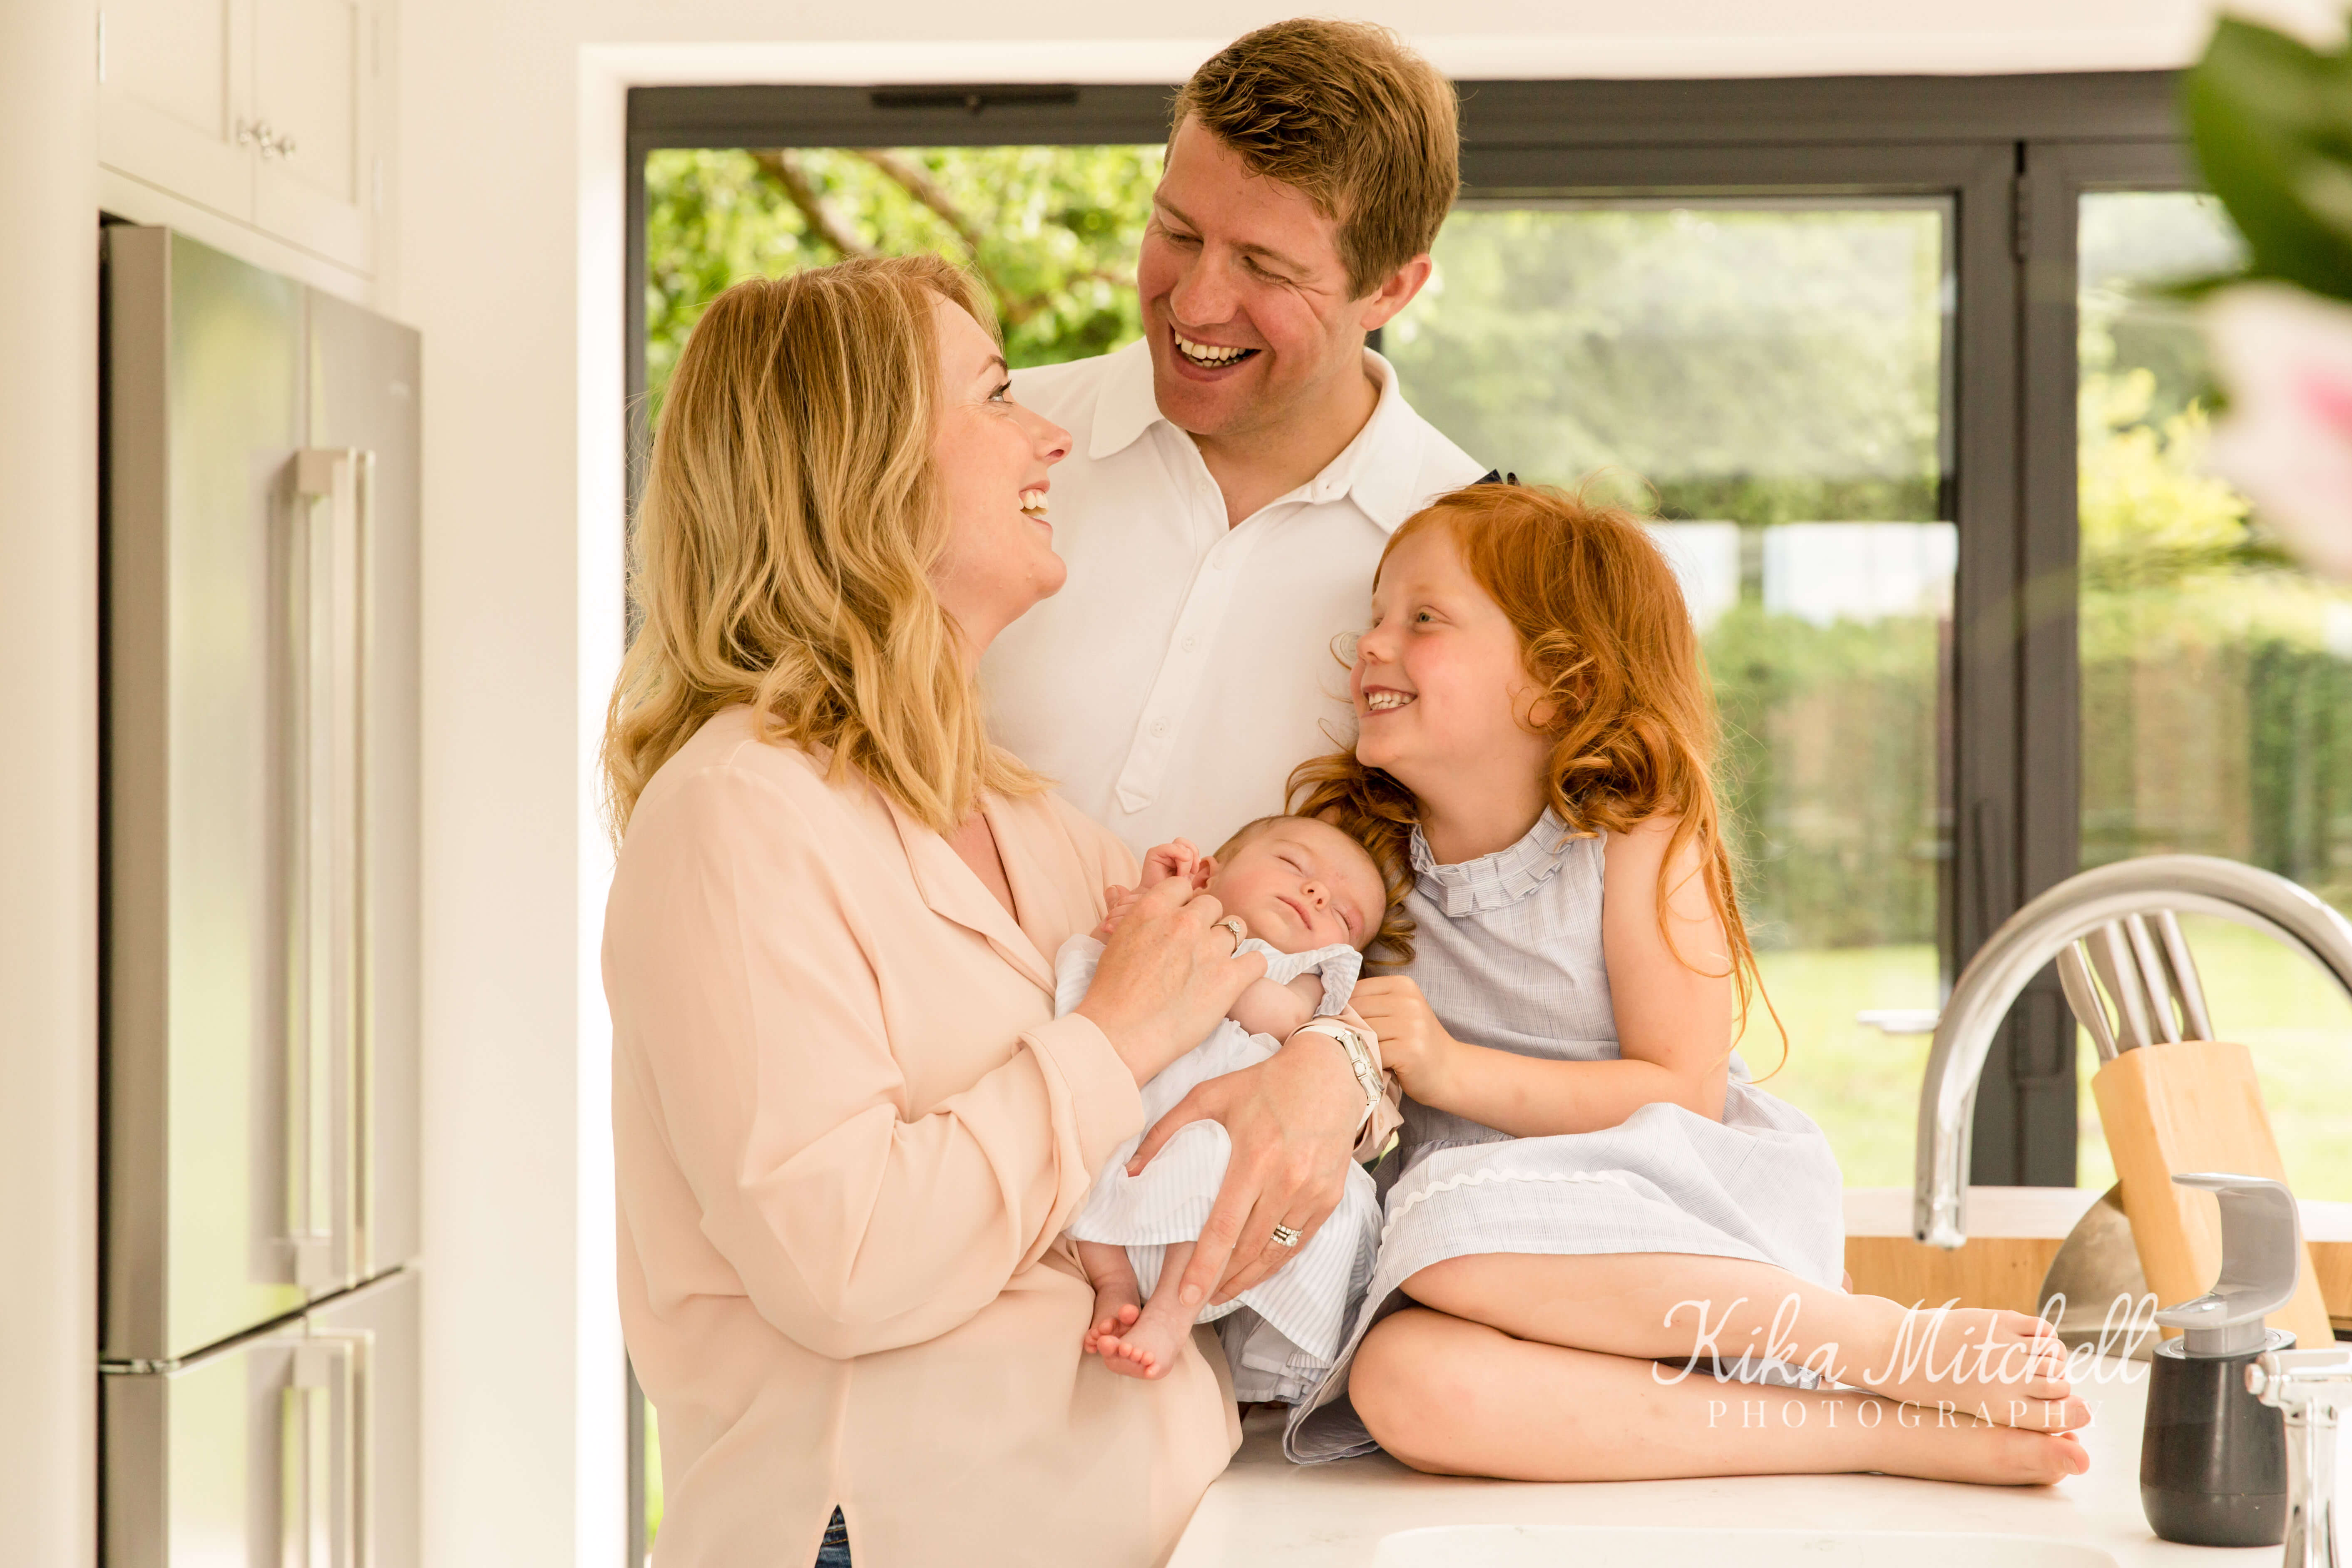 natural family and newborn photos by Kika mitchell Photography Chelmsford Photographer